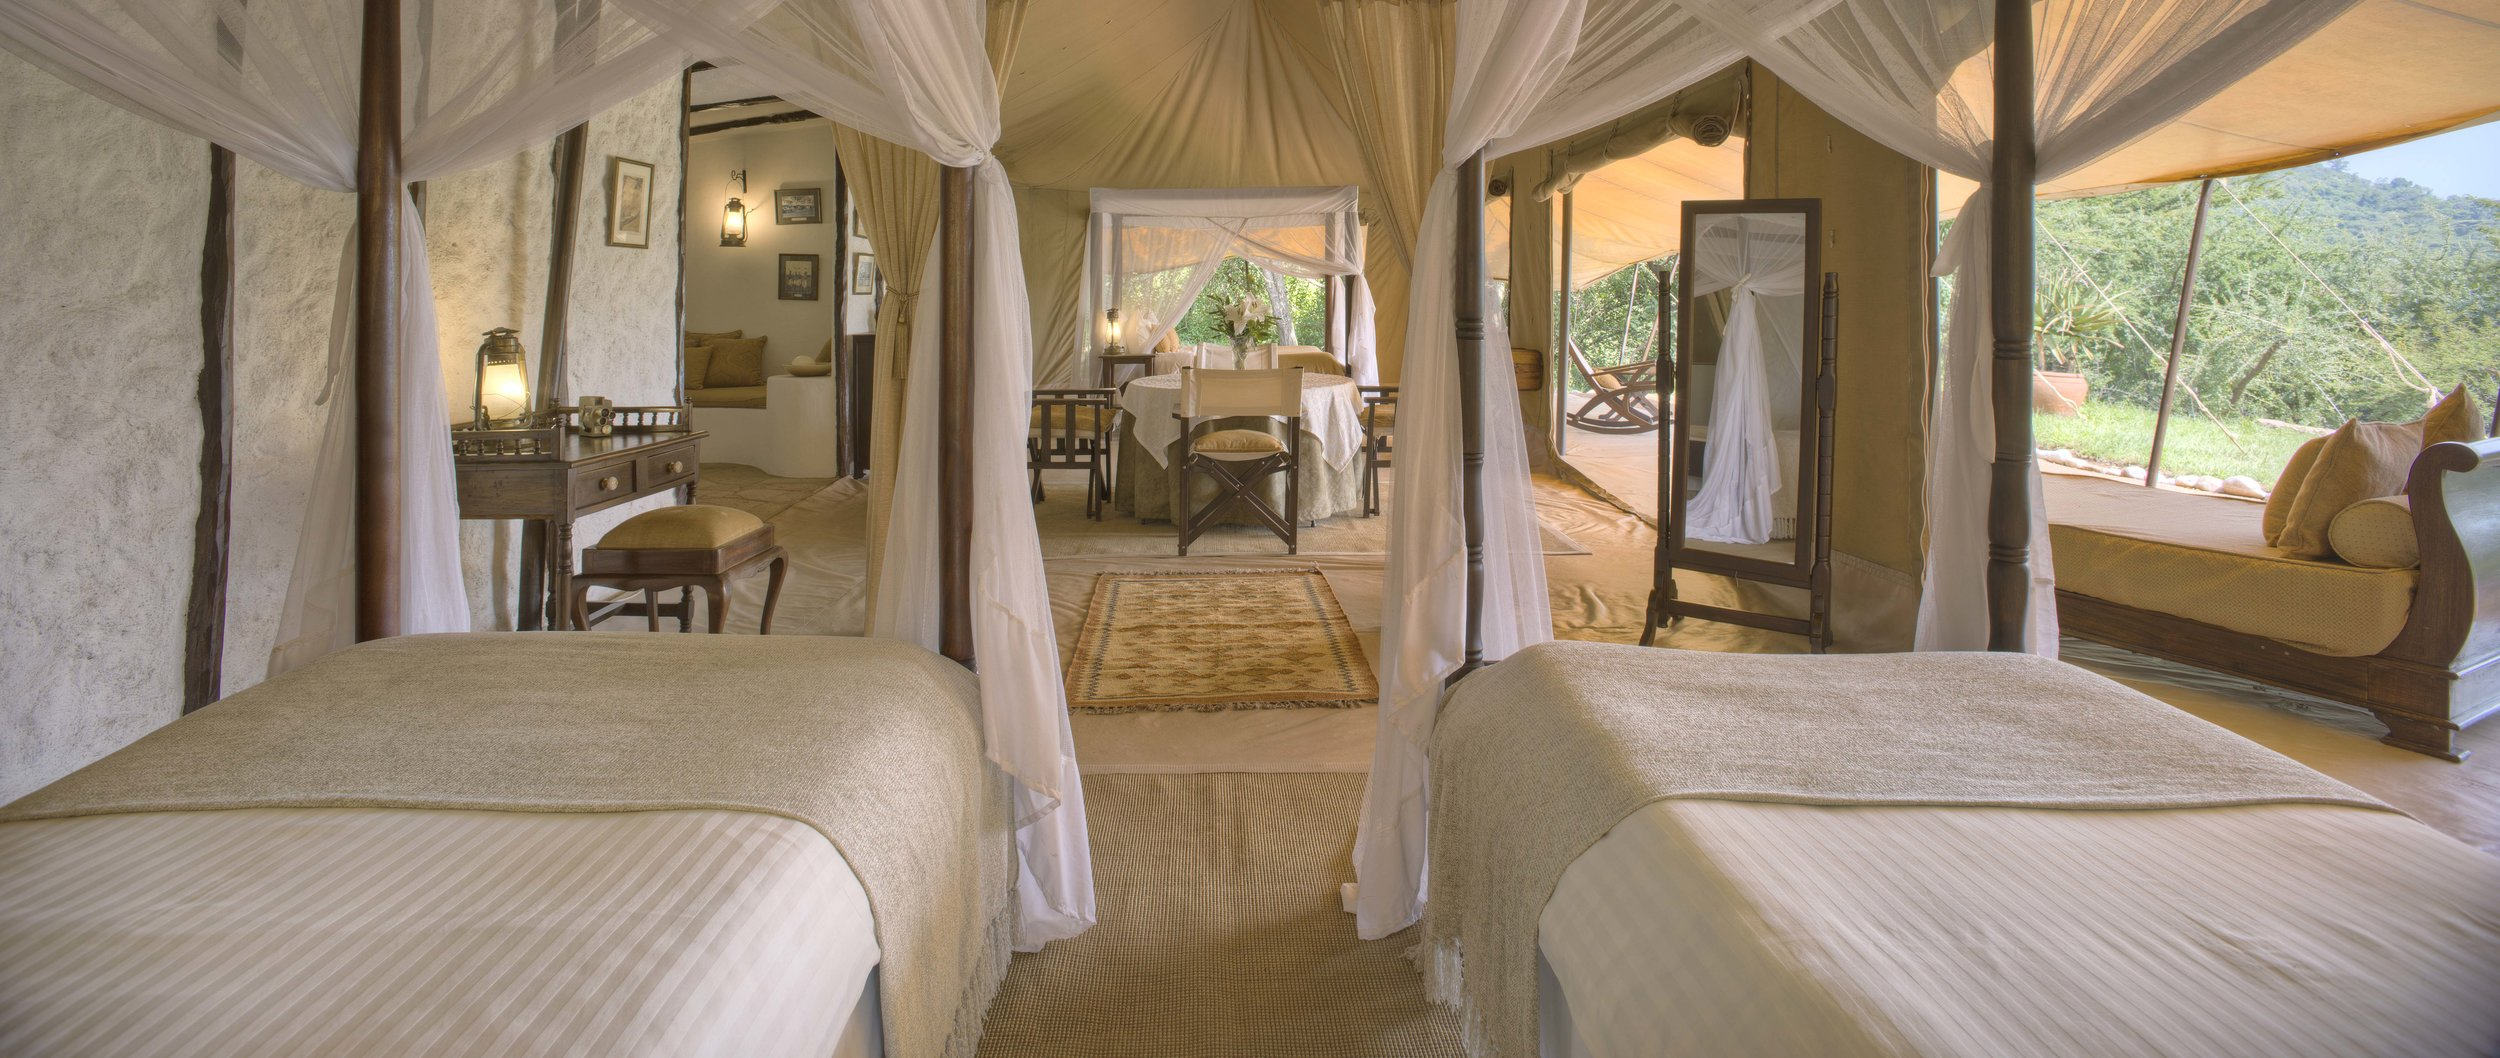 cottars_-_family_tent_twin_beds.jpg